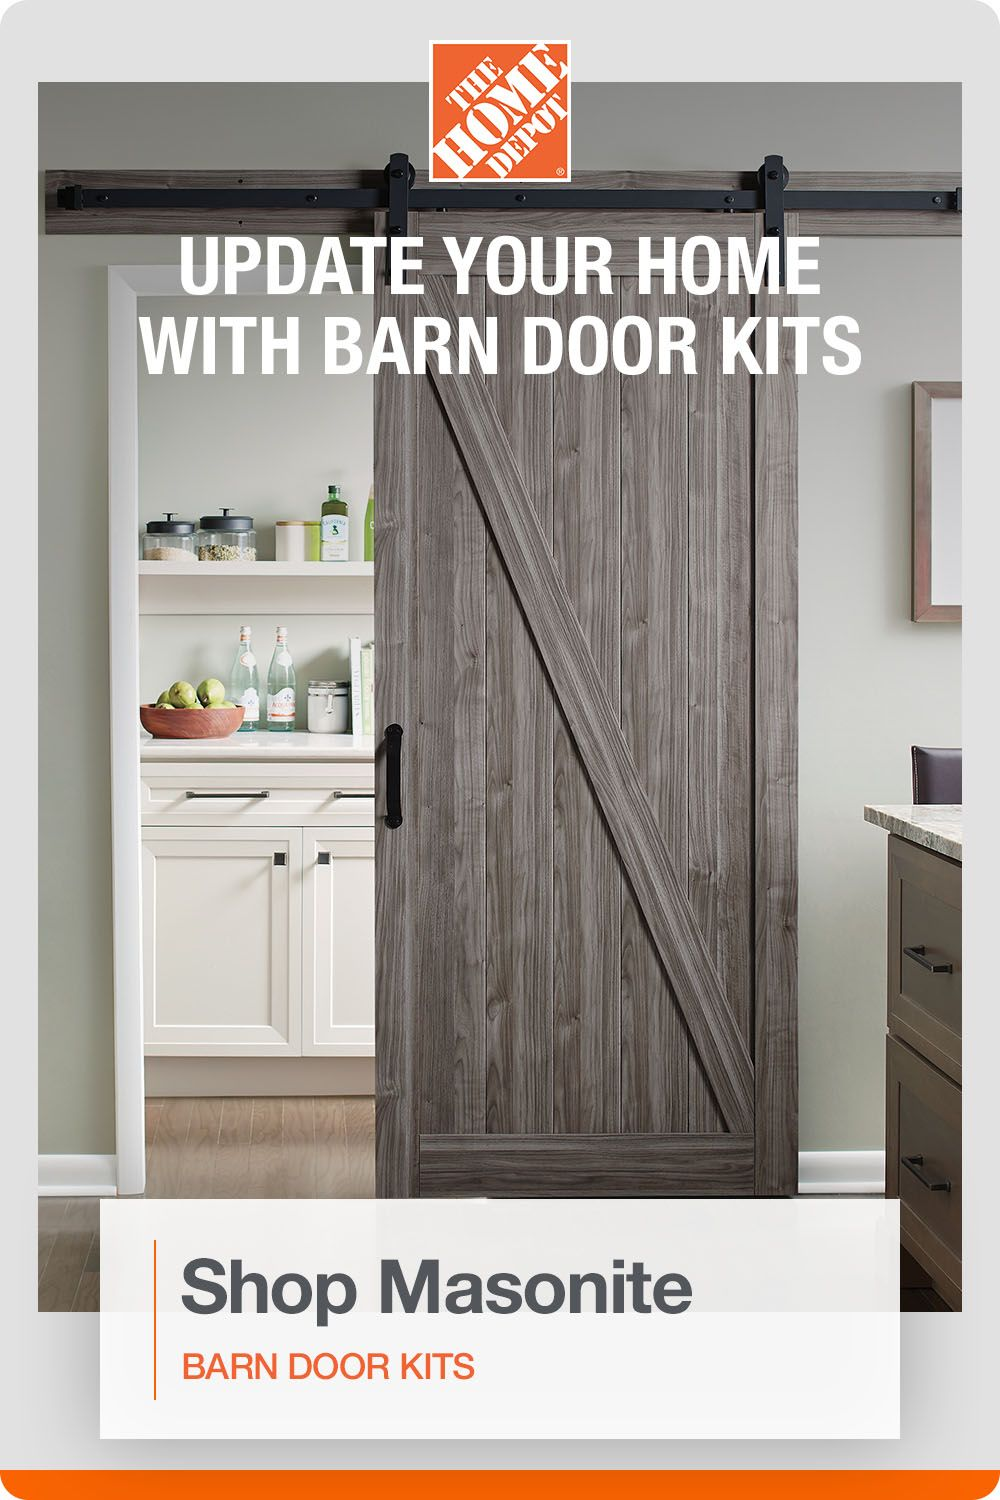 Quickly And Easily Update Your Home With Masonite Barn Door Diy Kits In 2020 Interior Design Bedroom Small Diy Barn Door Diy Barn Door Cheap